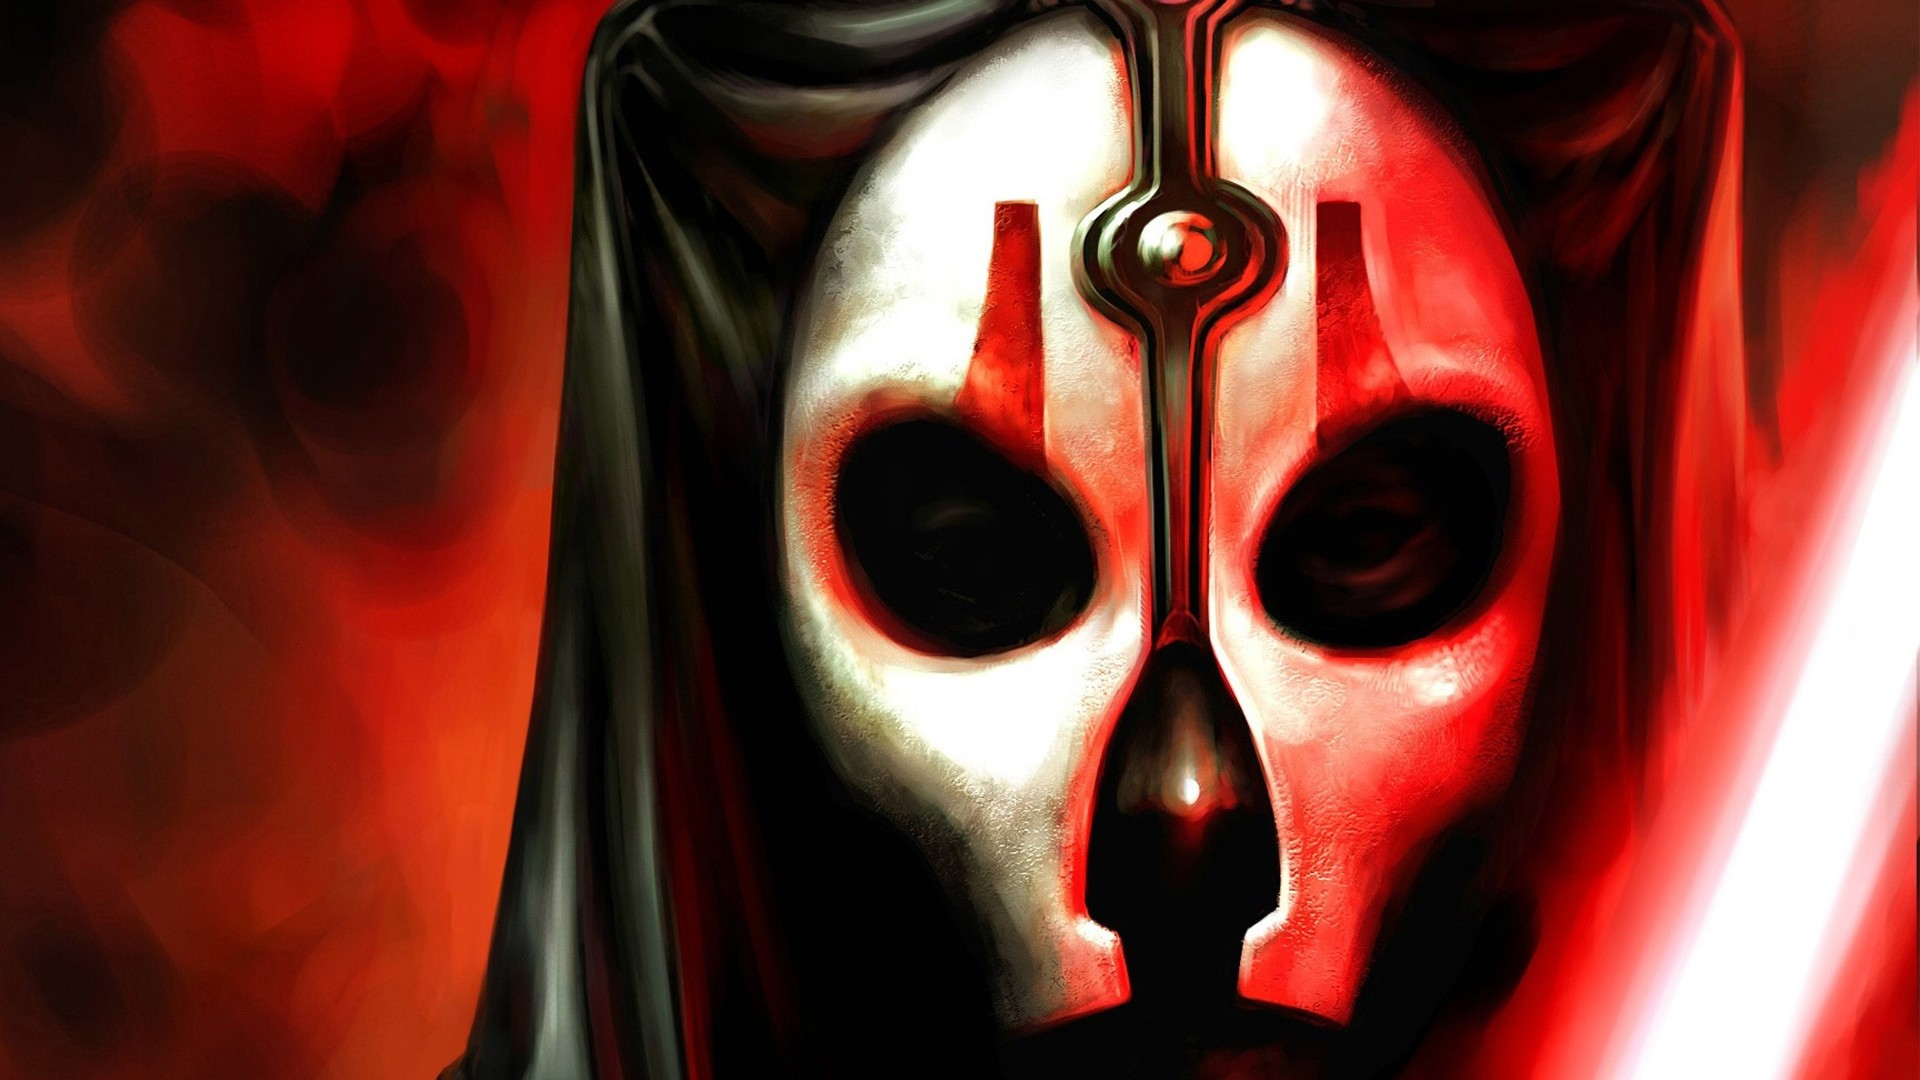 1920x1080 Preview wallpaper star wars, knights of the old republic, ii, 2, the